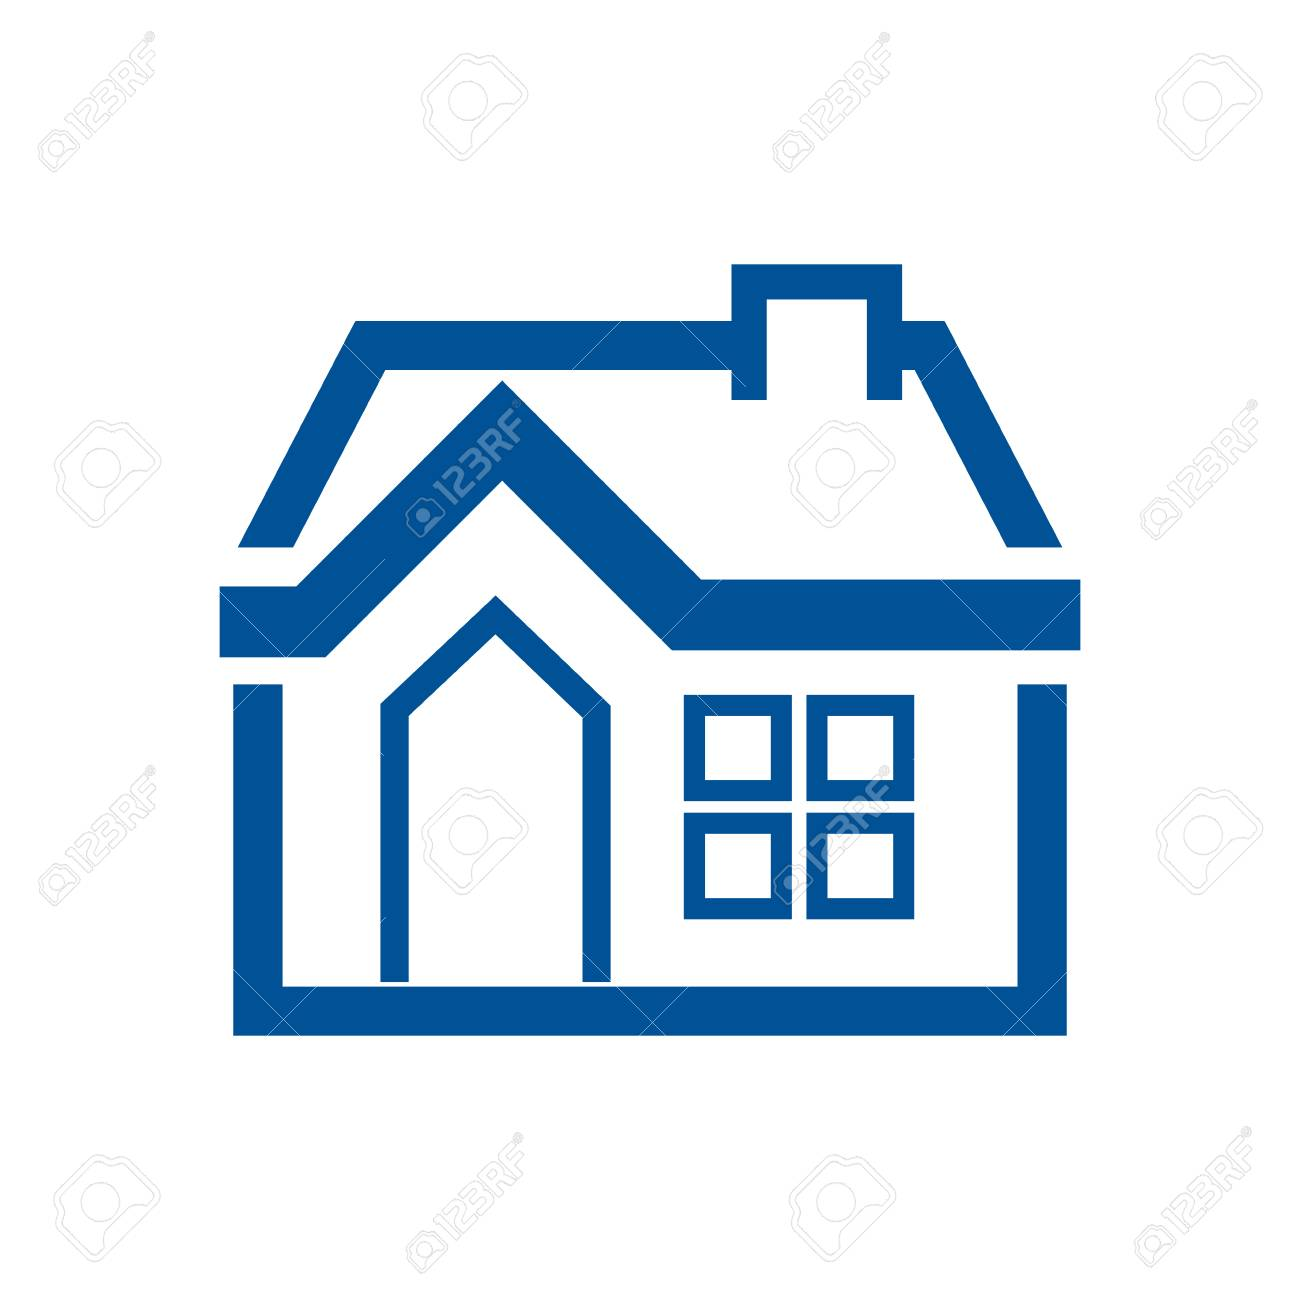 home draw house vector icon illustration graphic design royalty free rh 123rf com house icon vector free download house vector freepik